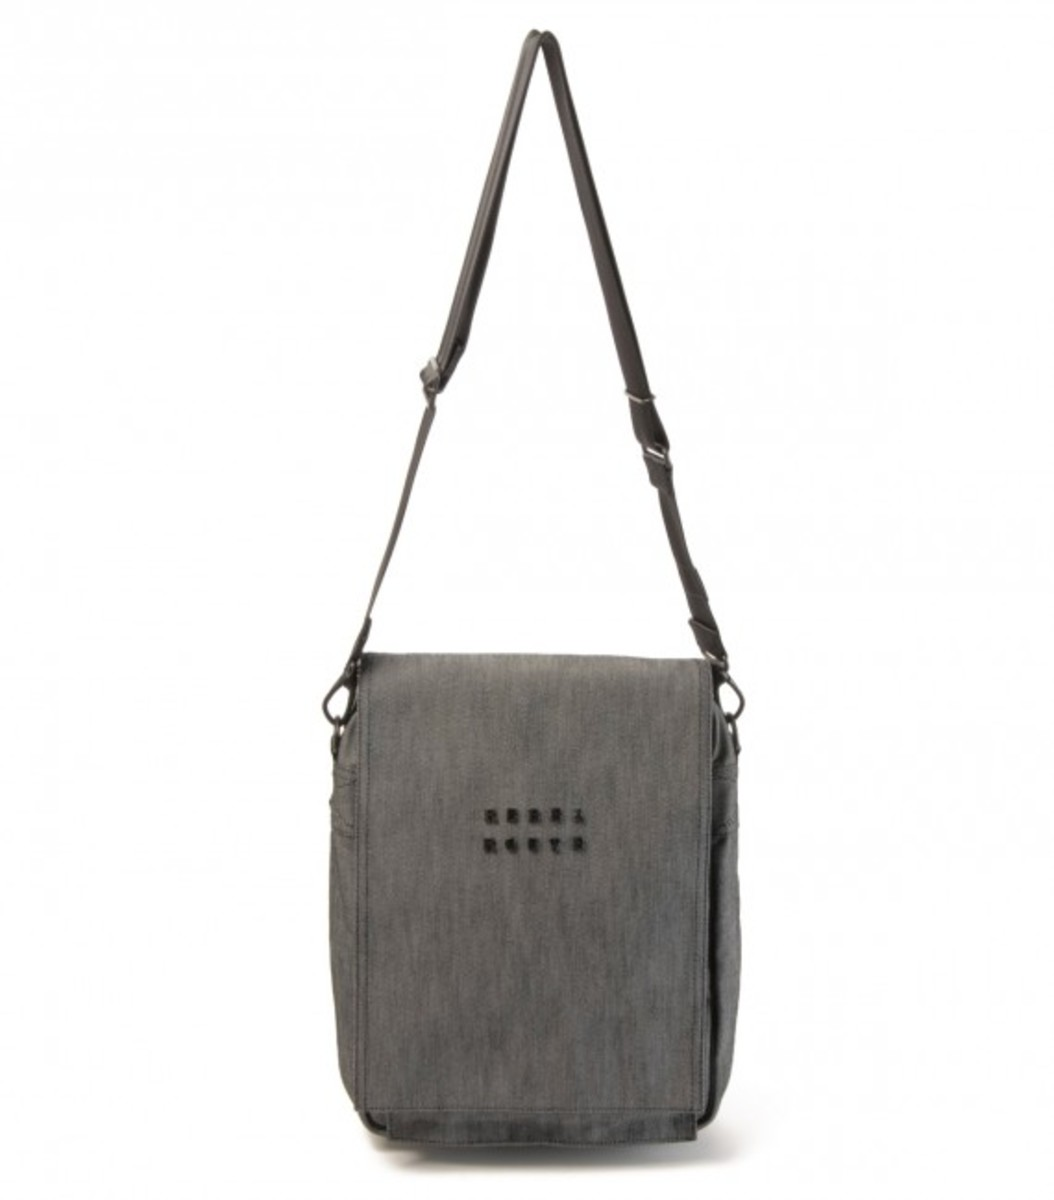 kichizo-shoulder-bag-02